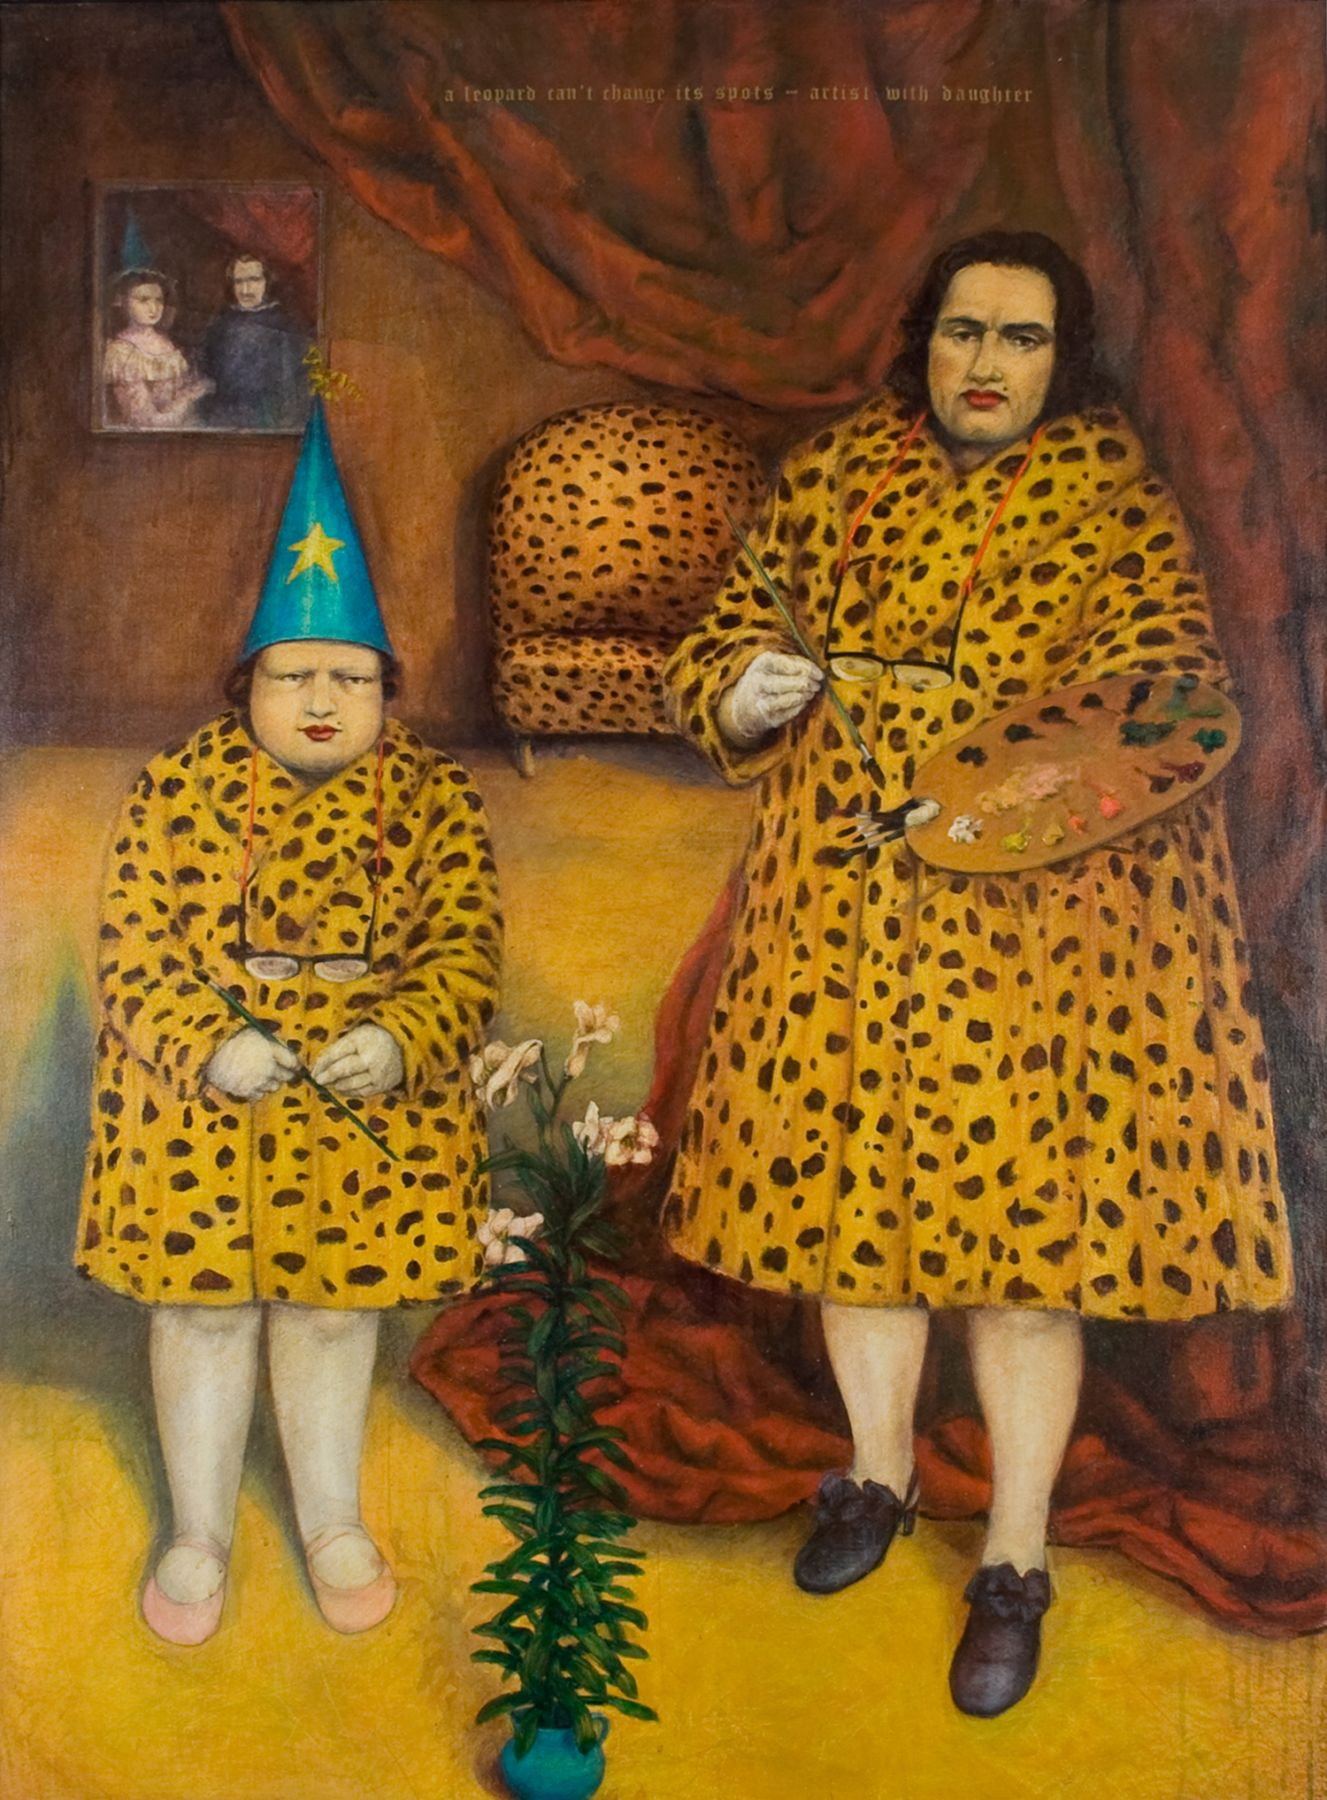 Kathleen Jesse, A Leopard Can't Change Its Spots - Artist with Daughter, 1994, oil on canvas on panel, 59 1/2 x 42 3/4 inches